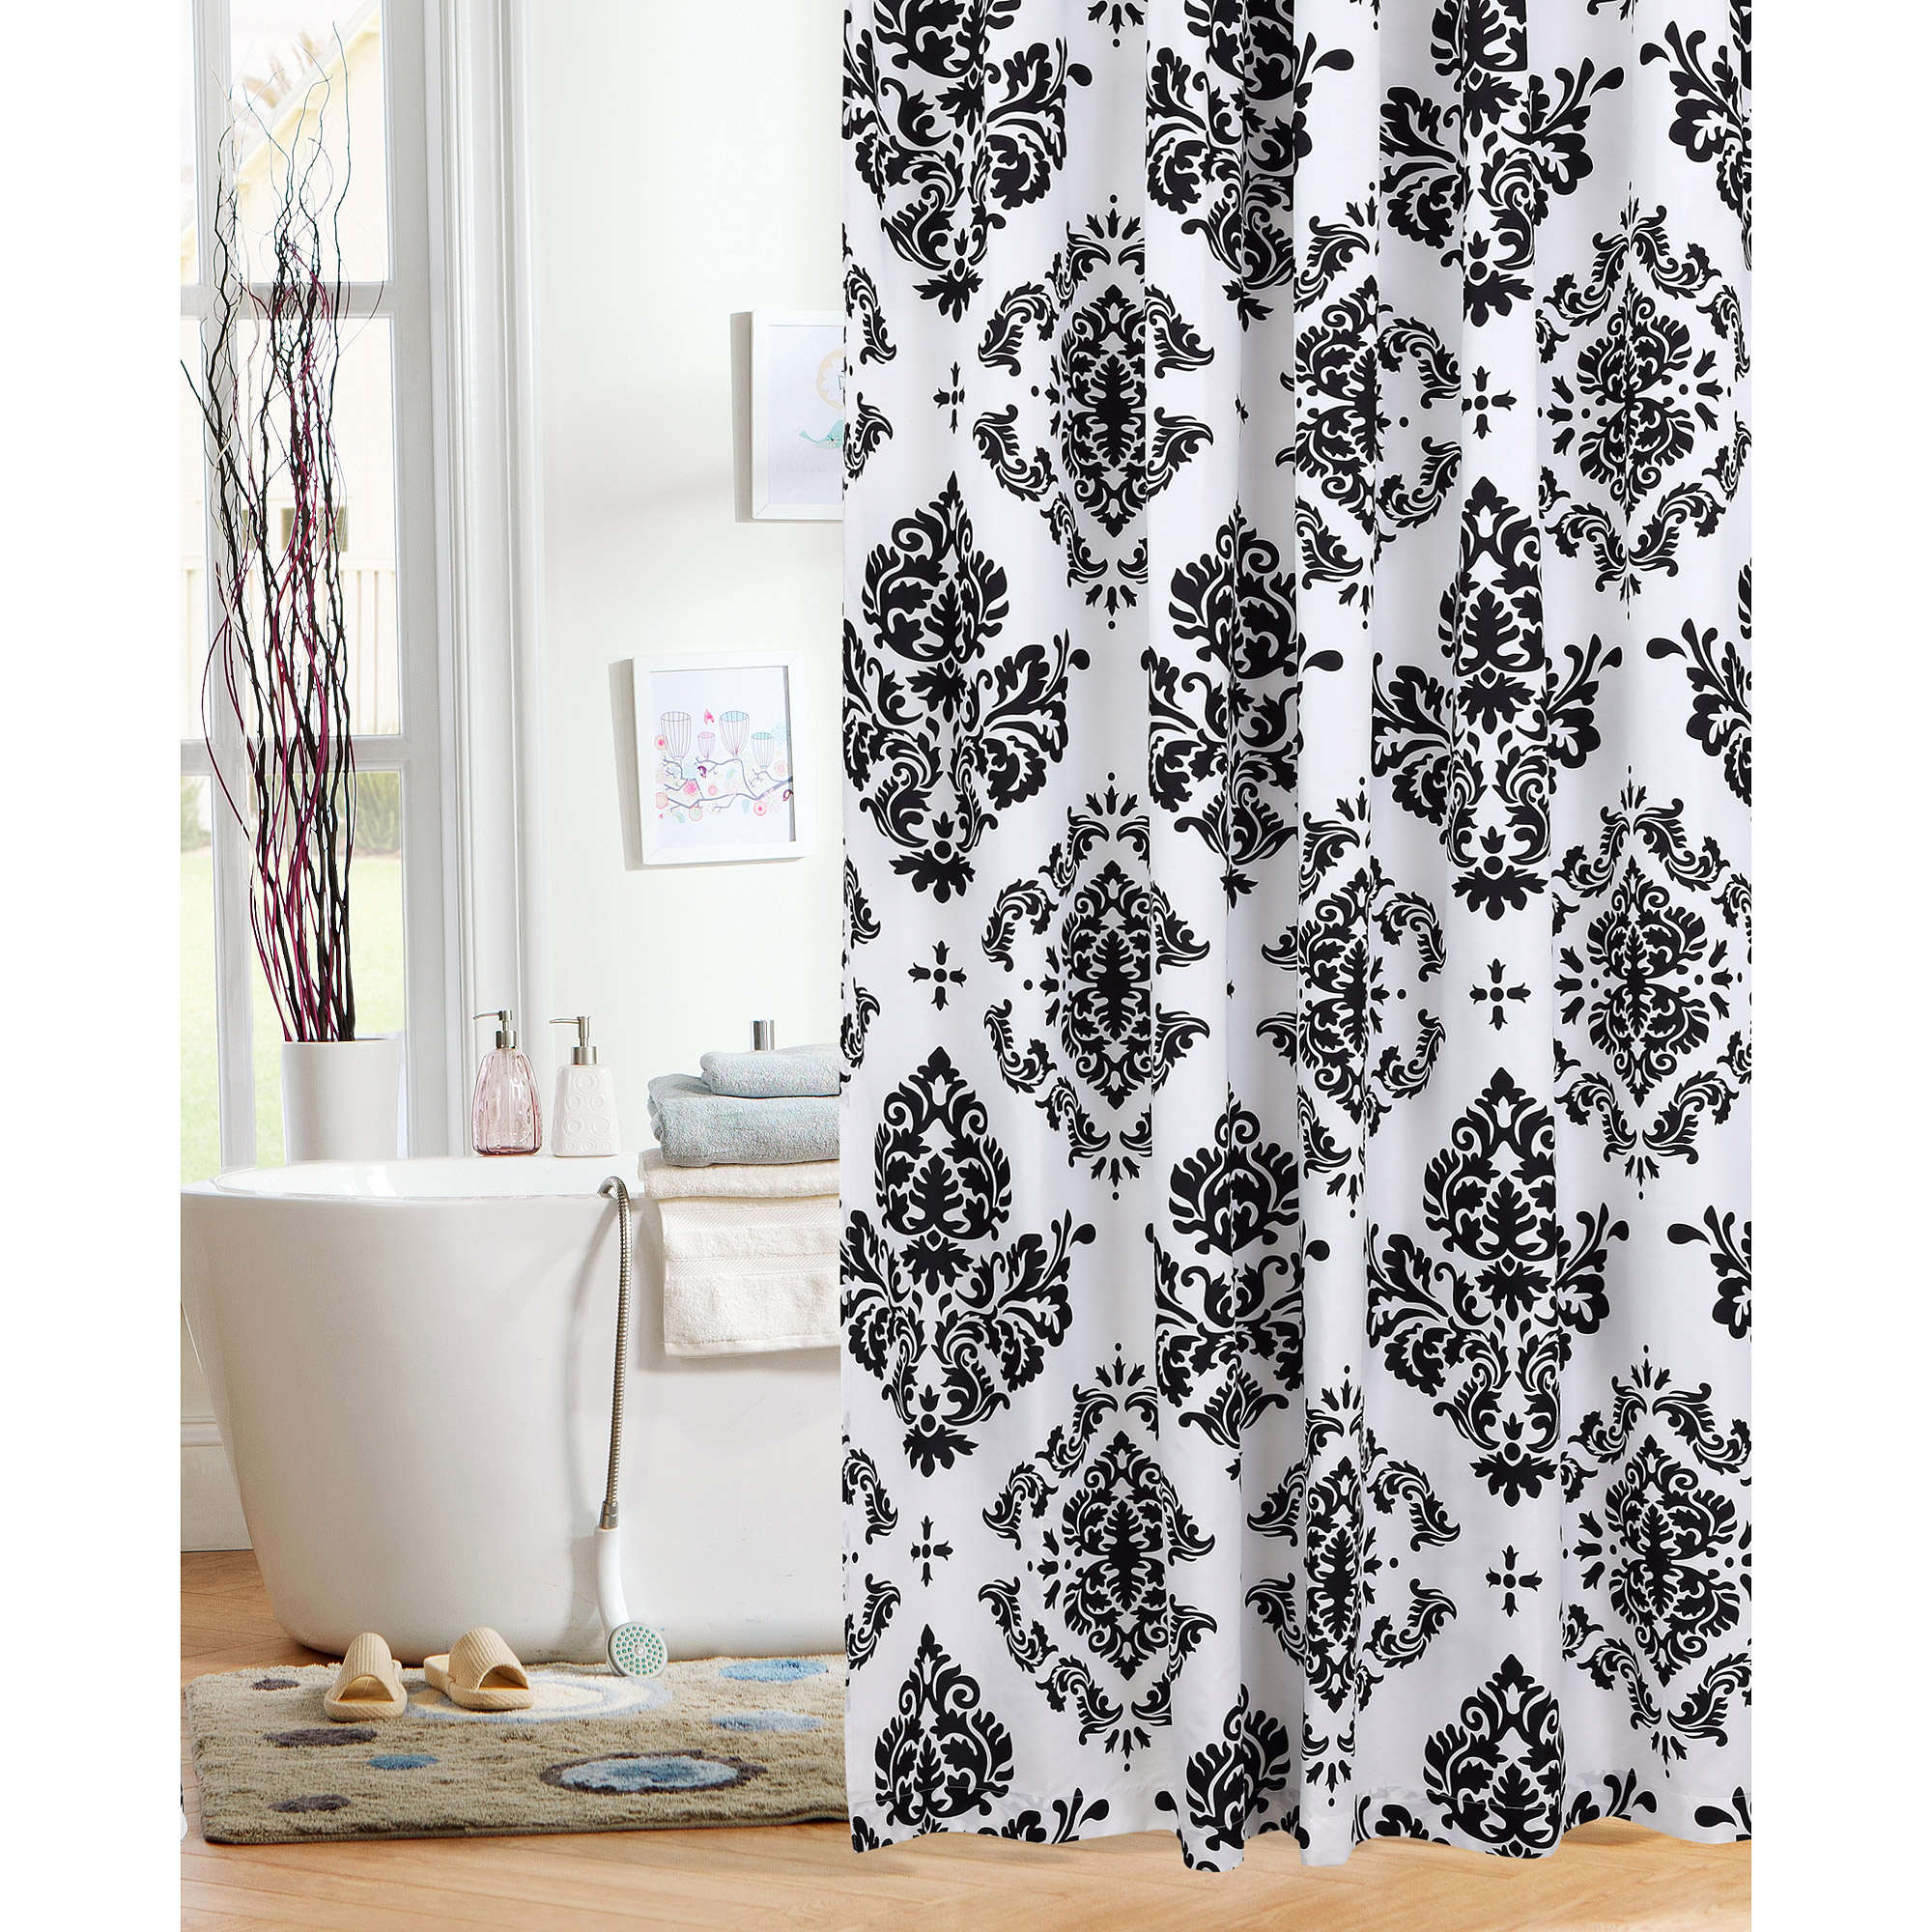 Mustache shower curtain - Mainstays Classic Noir 70 X 72 Fabric Shower Curtain